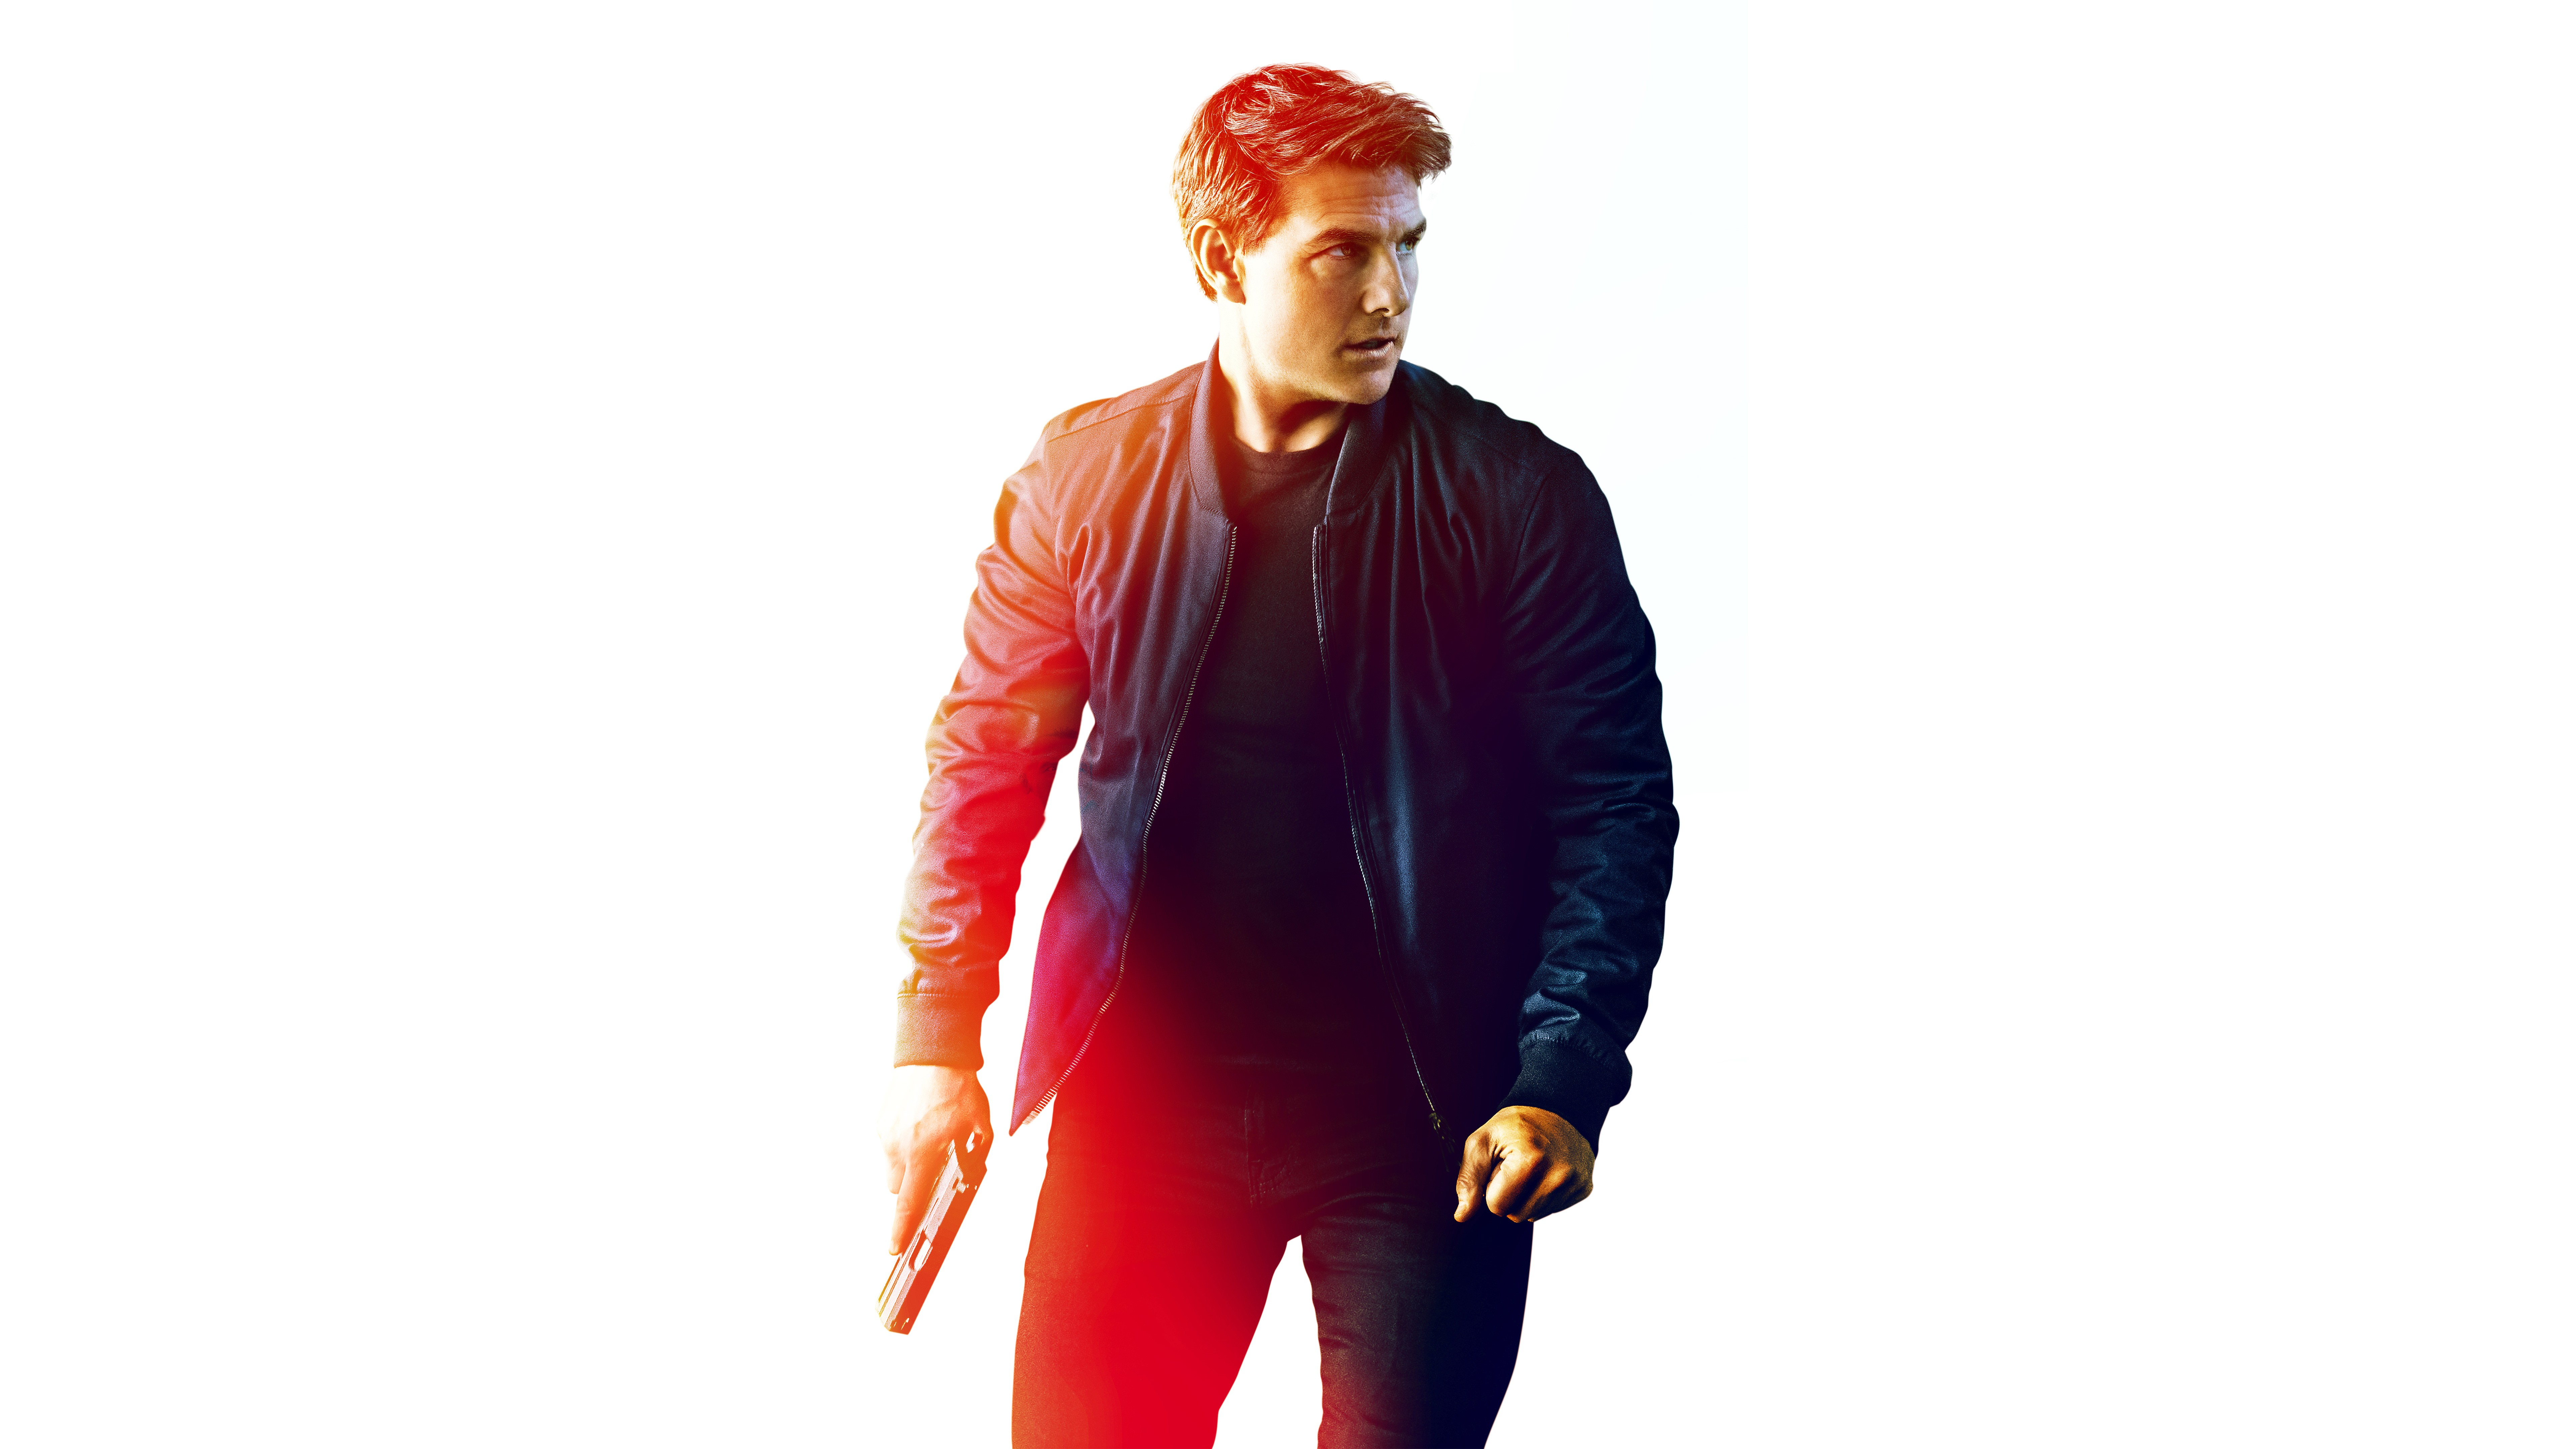 4k Hd Wallpapers For Iphone Wallpaper Mission Impossible Fallout Poster Tom